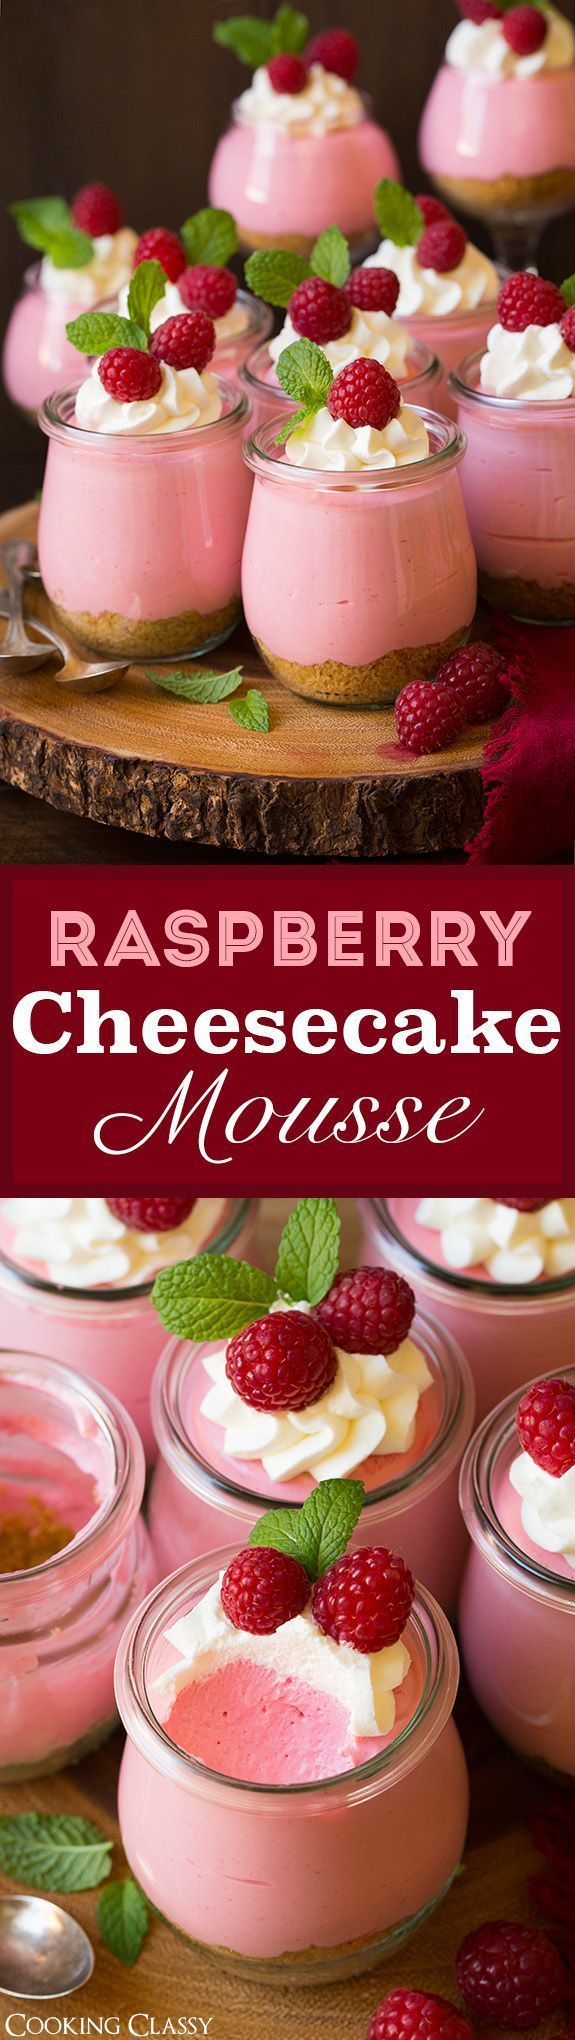 Make delicious raspberry cheesecake mousse full of fresh raspberry flavor this summer. Check out the recipe!